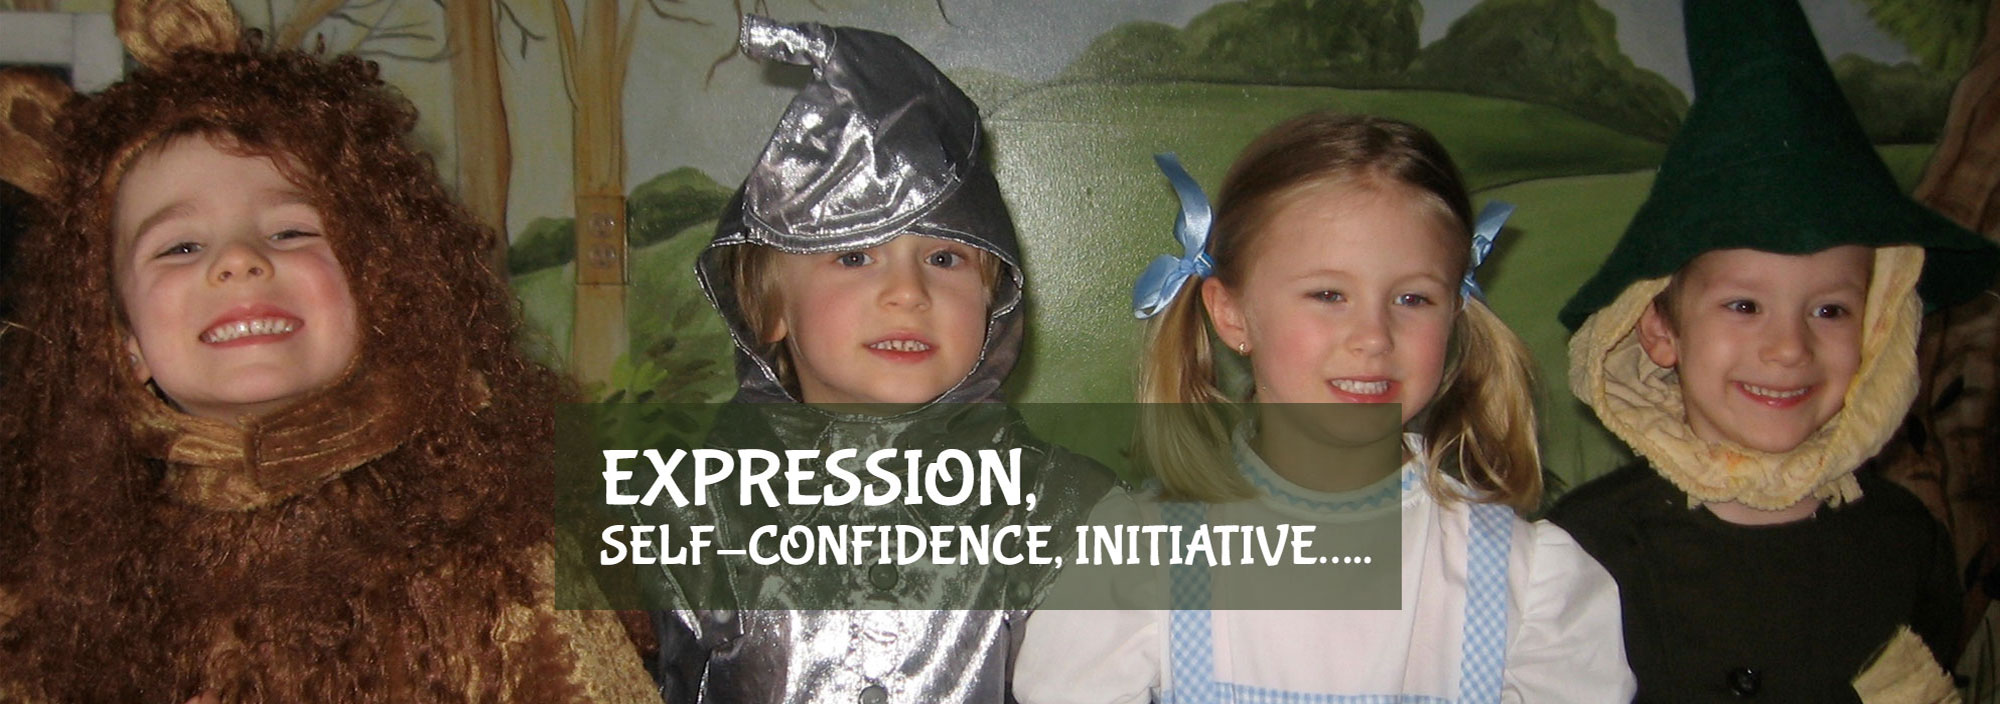 Expression, Self-Confidence, Initiative.....